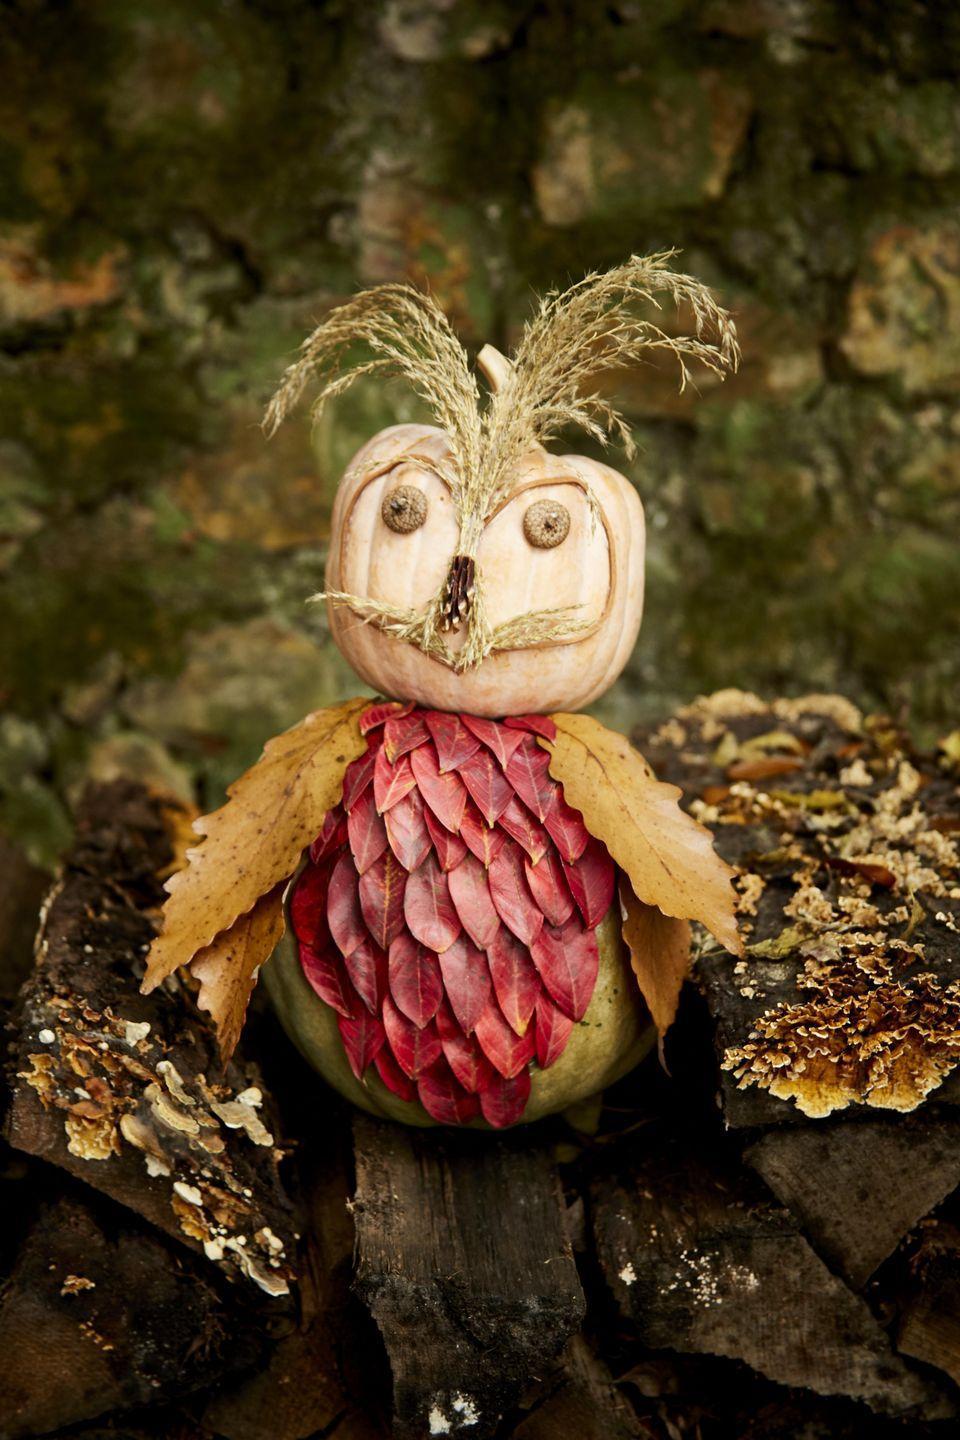 <p>This sweet face just requires a trip to the backyard to gather a few leaves and pine cones. <br><br><strong>To make:</strong> Gather small- and medium-sized leaves, acorn caps, grasses, and pinecones from the yard. Glue small leaves on the front of a small oblong pumpkin, overlapping them slightly, to create feathers. Glue four larger leaves on either side, overlapping them, to create wings. Attach a piece of thin leather string with hot glue to a small acorn squash to create the outline of the face. Pull apart a pinecone and use the individual scales to create the nose, attaching them with hot glue. Attach acorn caps to create eyes and grass to create ears and whiskers.</p>